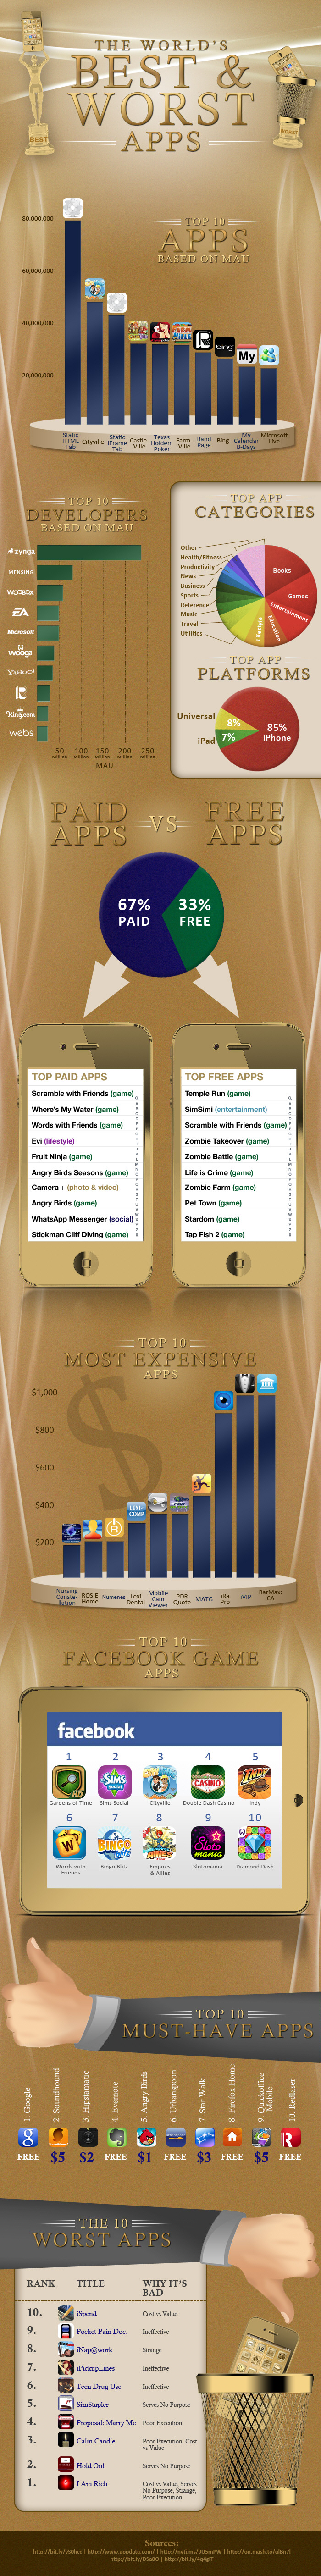 The World's Best and Worst Apps